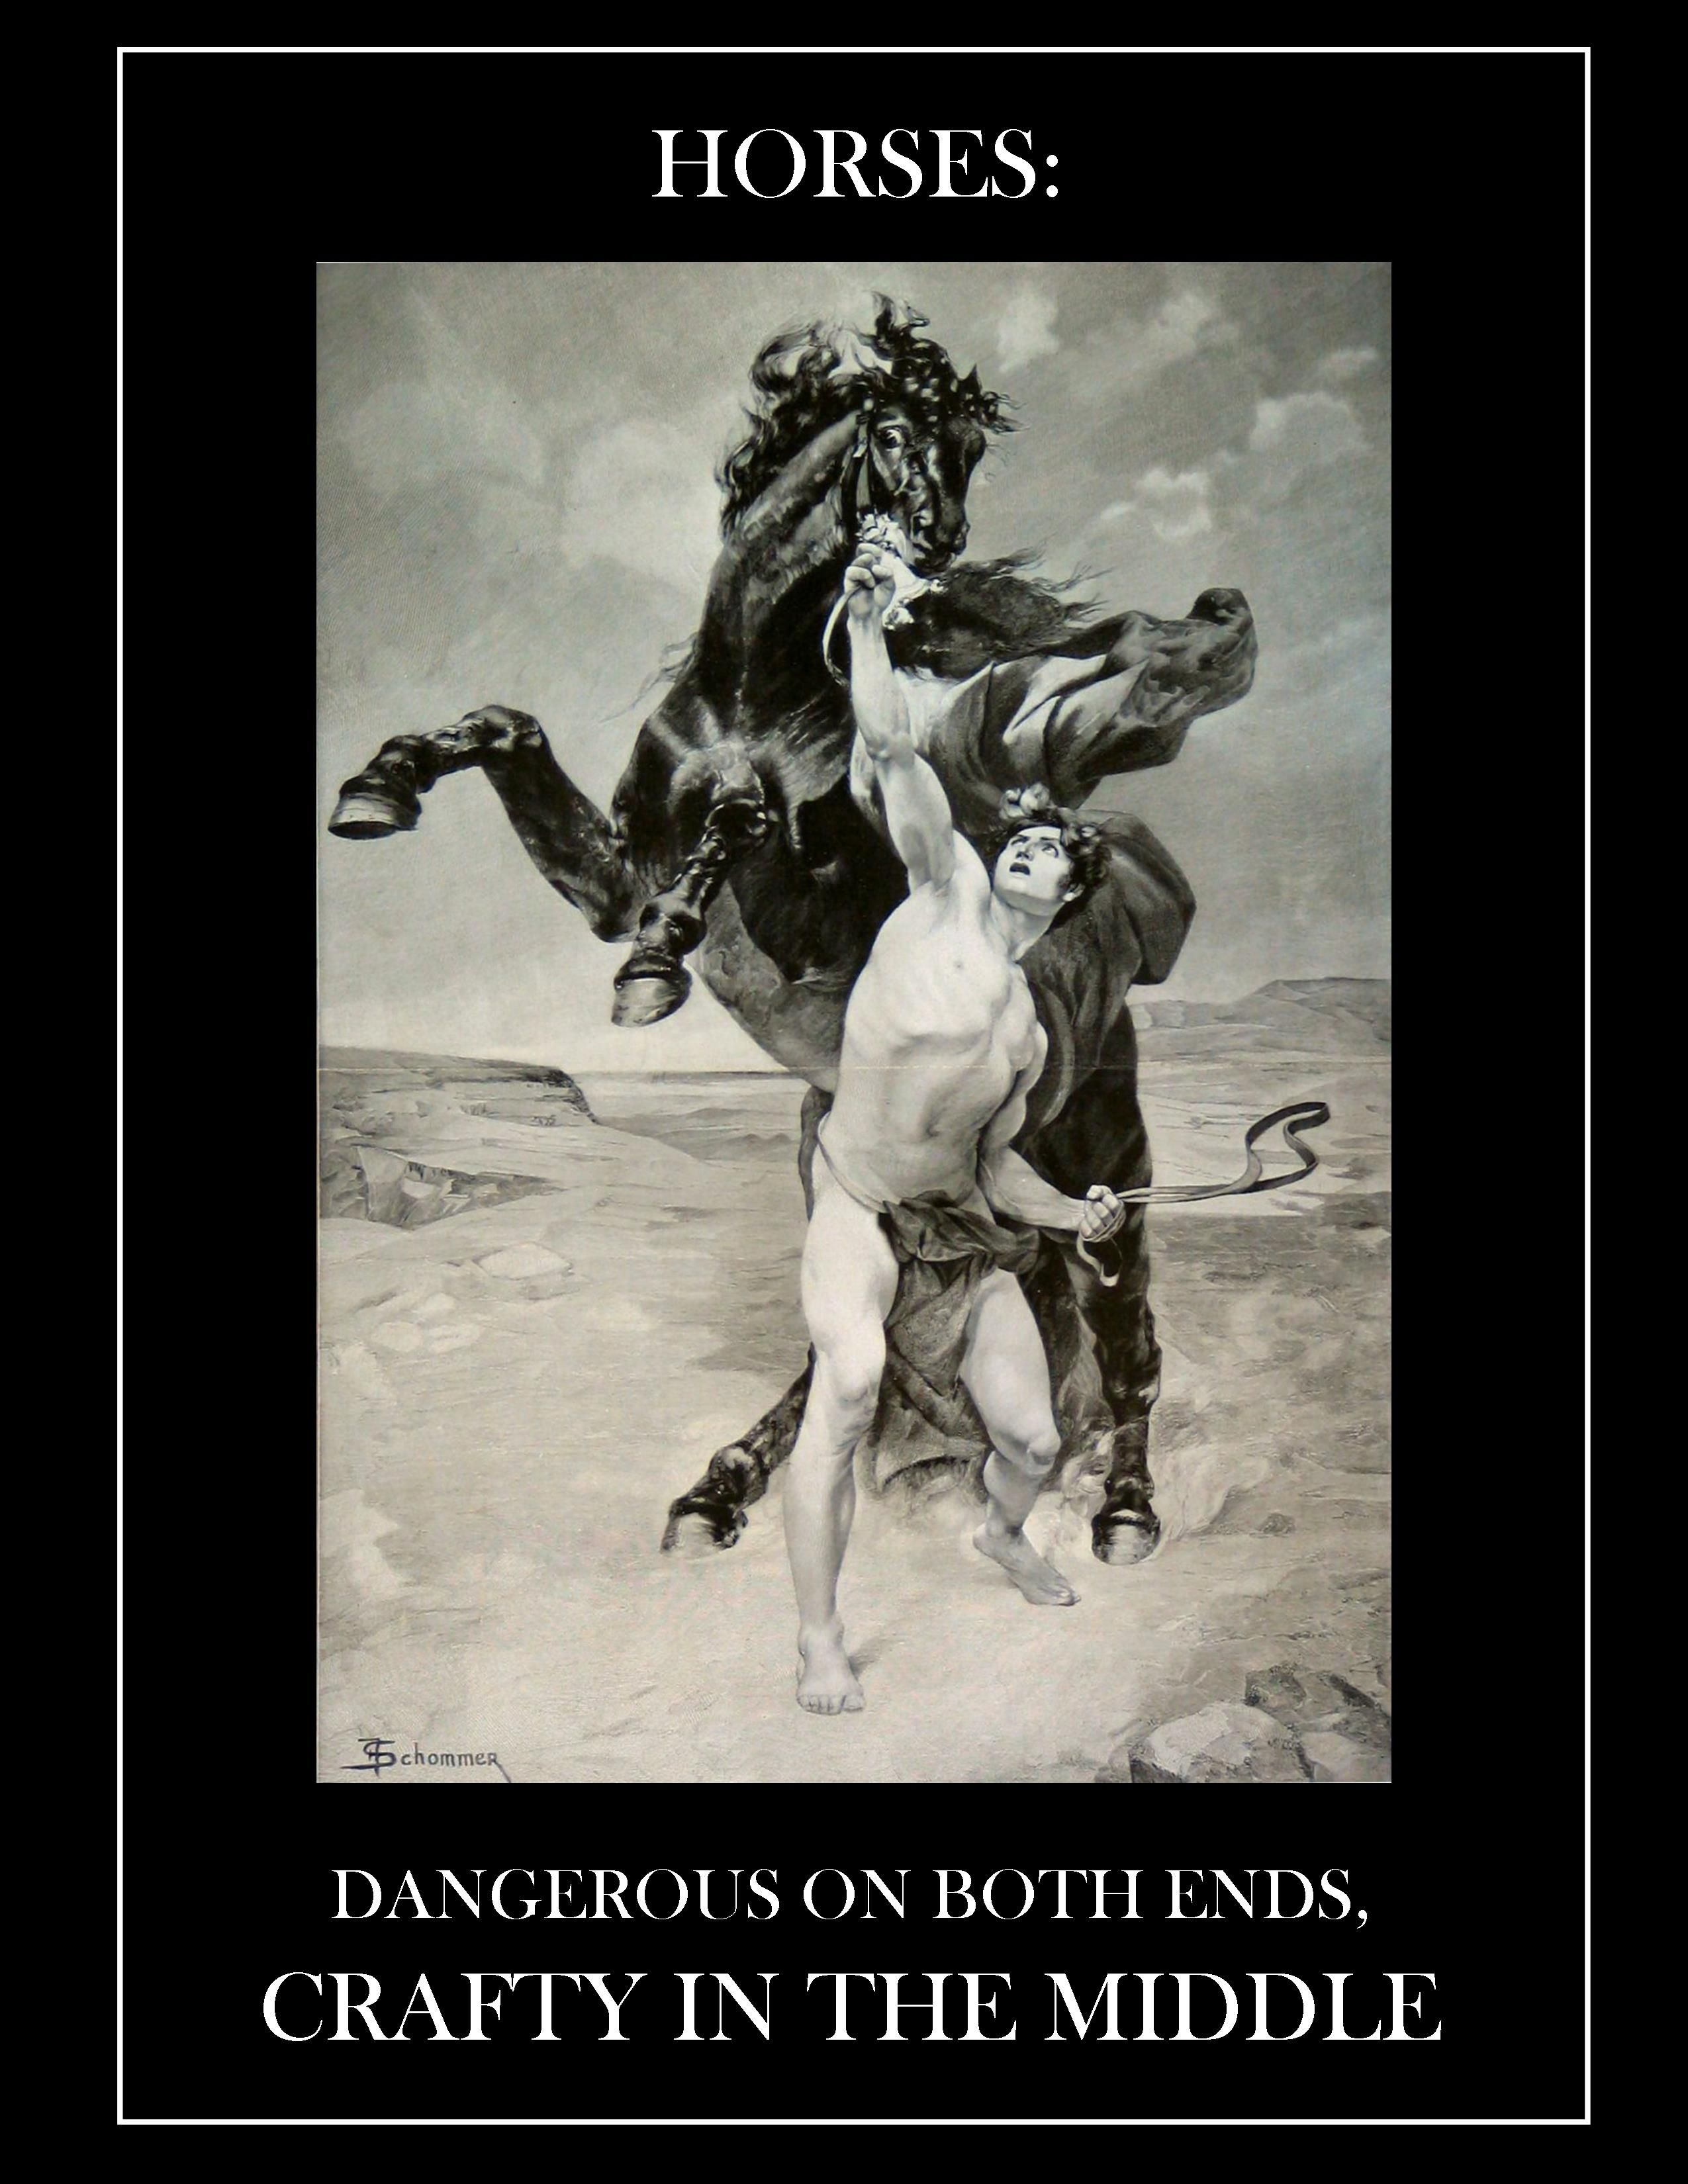 Horses: Dangerous on both ends, crafty in the middle | PETS: that